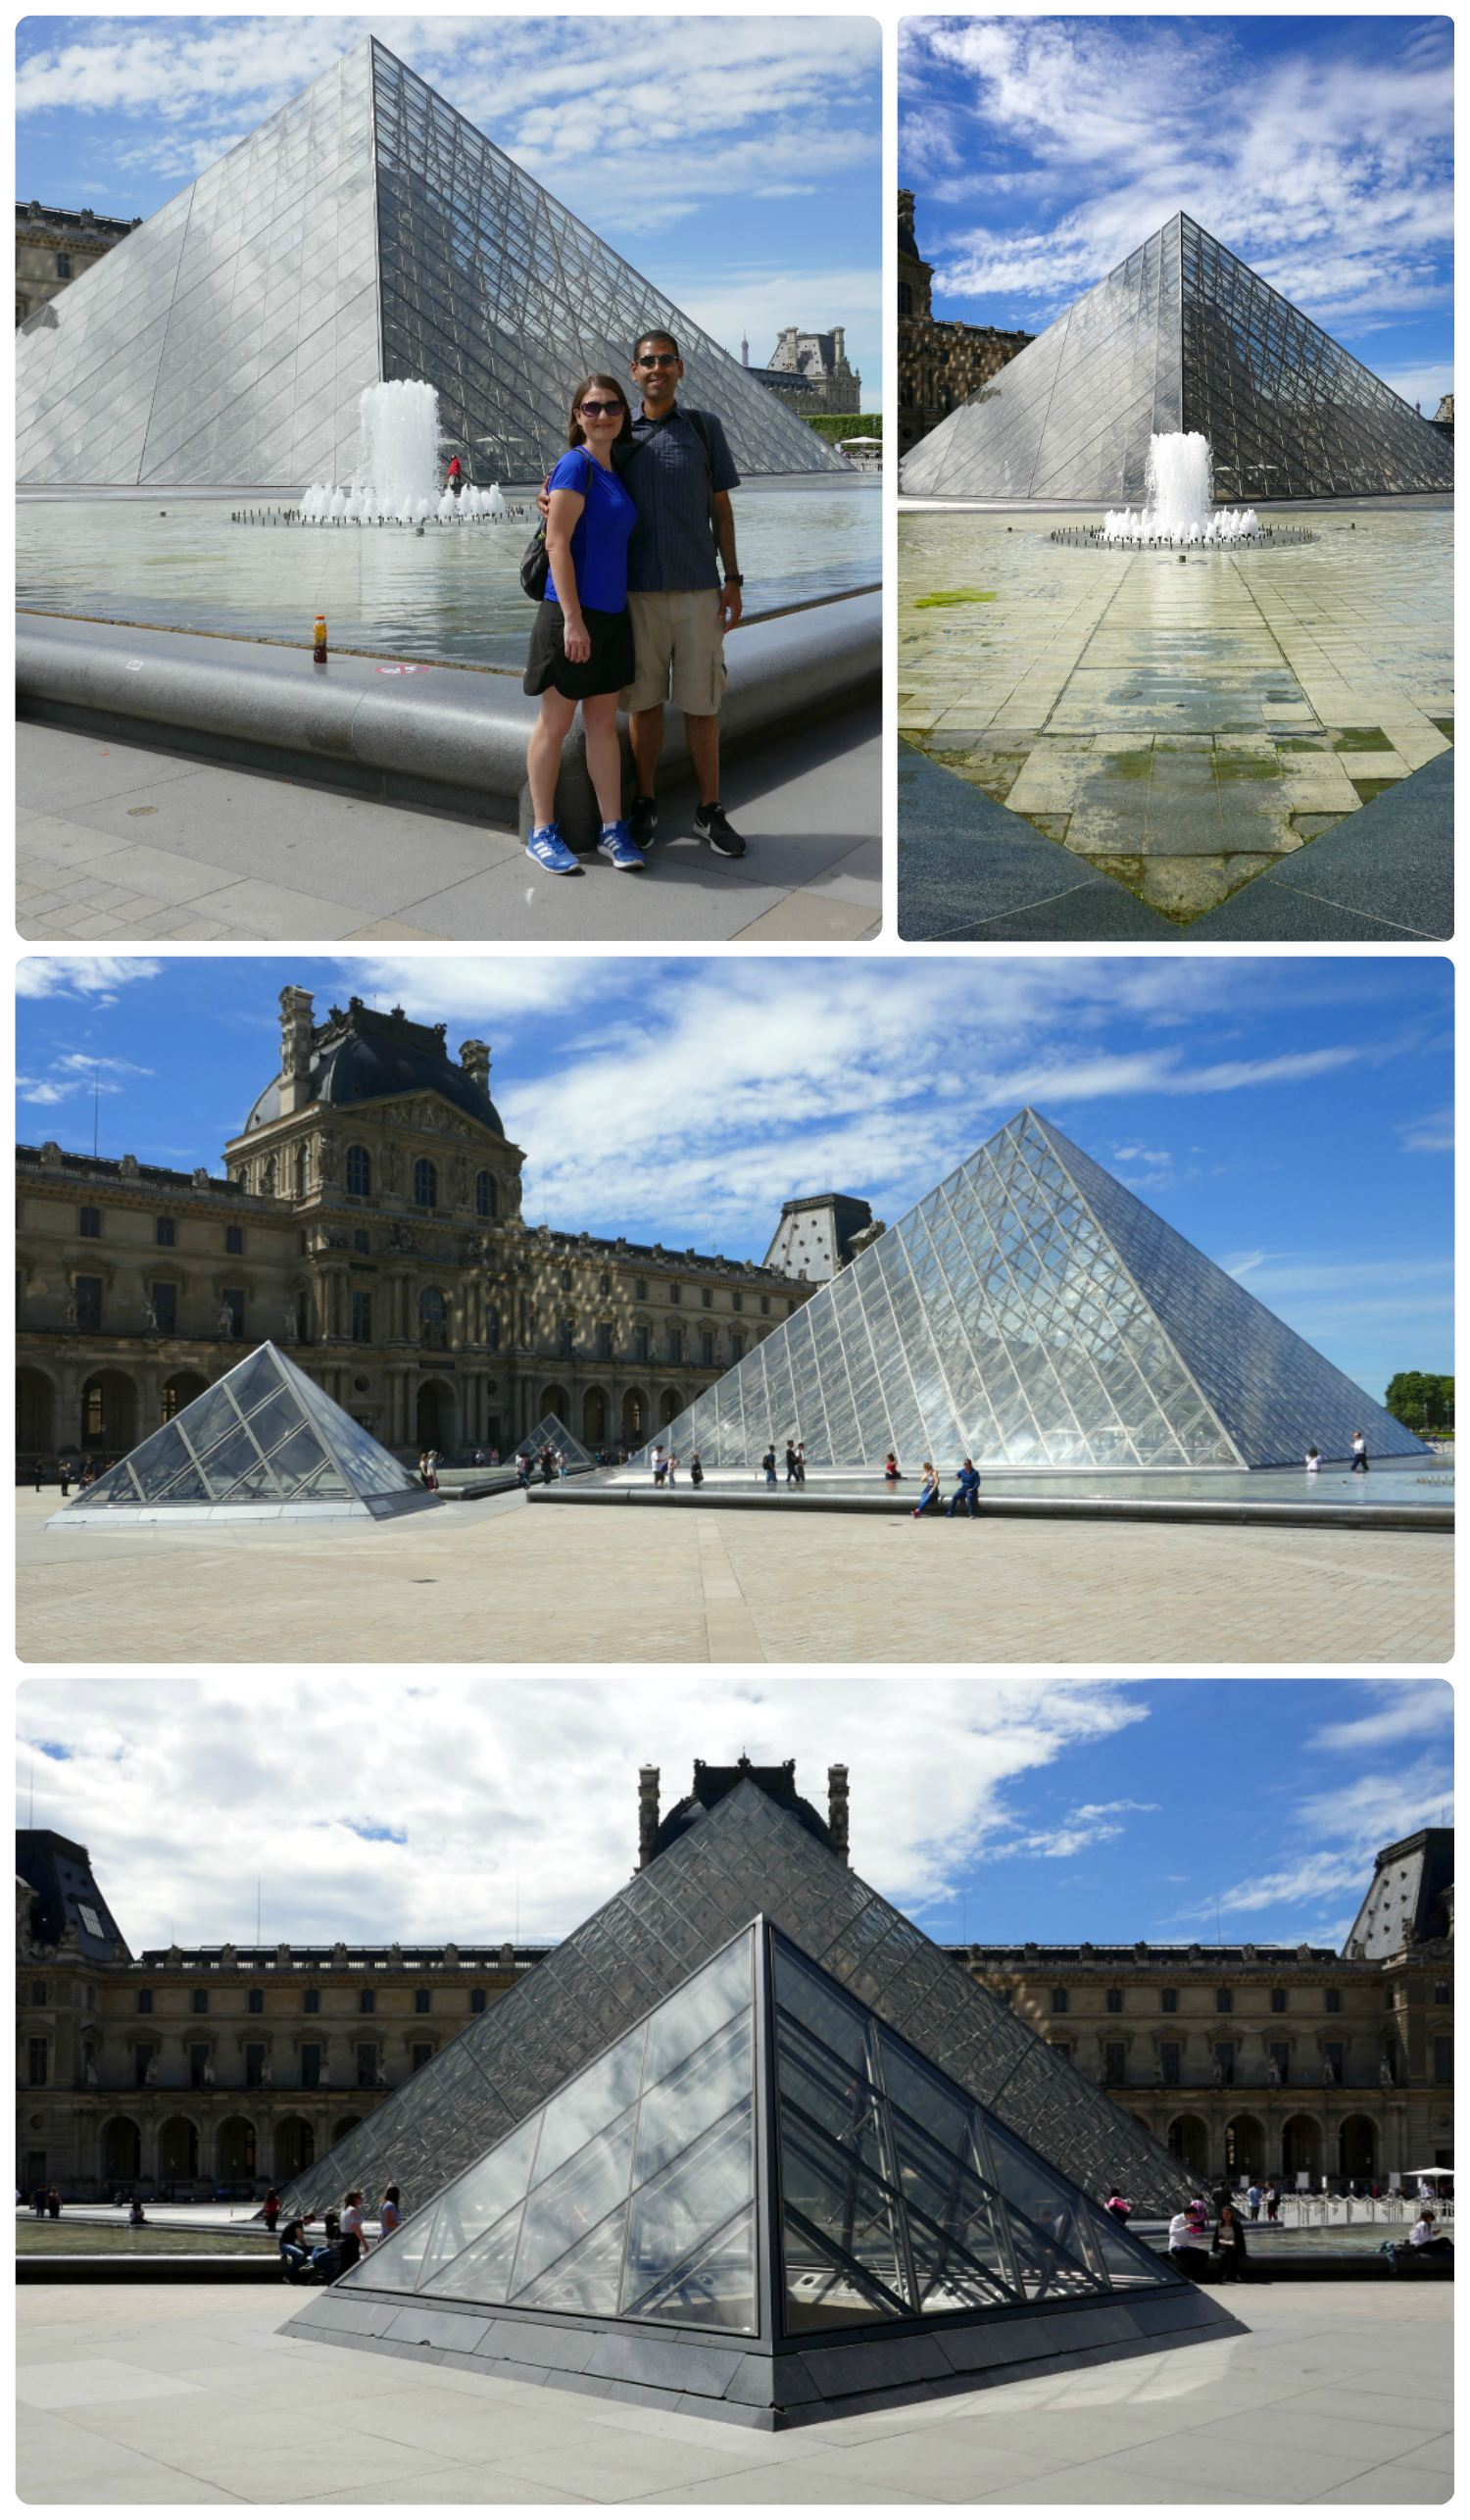 All images of the glass pyramids and fountains in the courtyard at the Louvre. The main entrance to the Louvre is inside the larger pyramid.